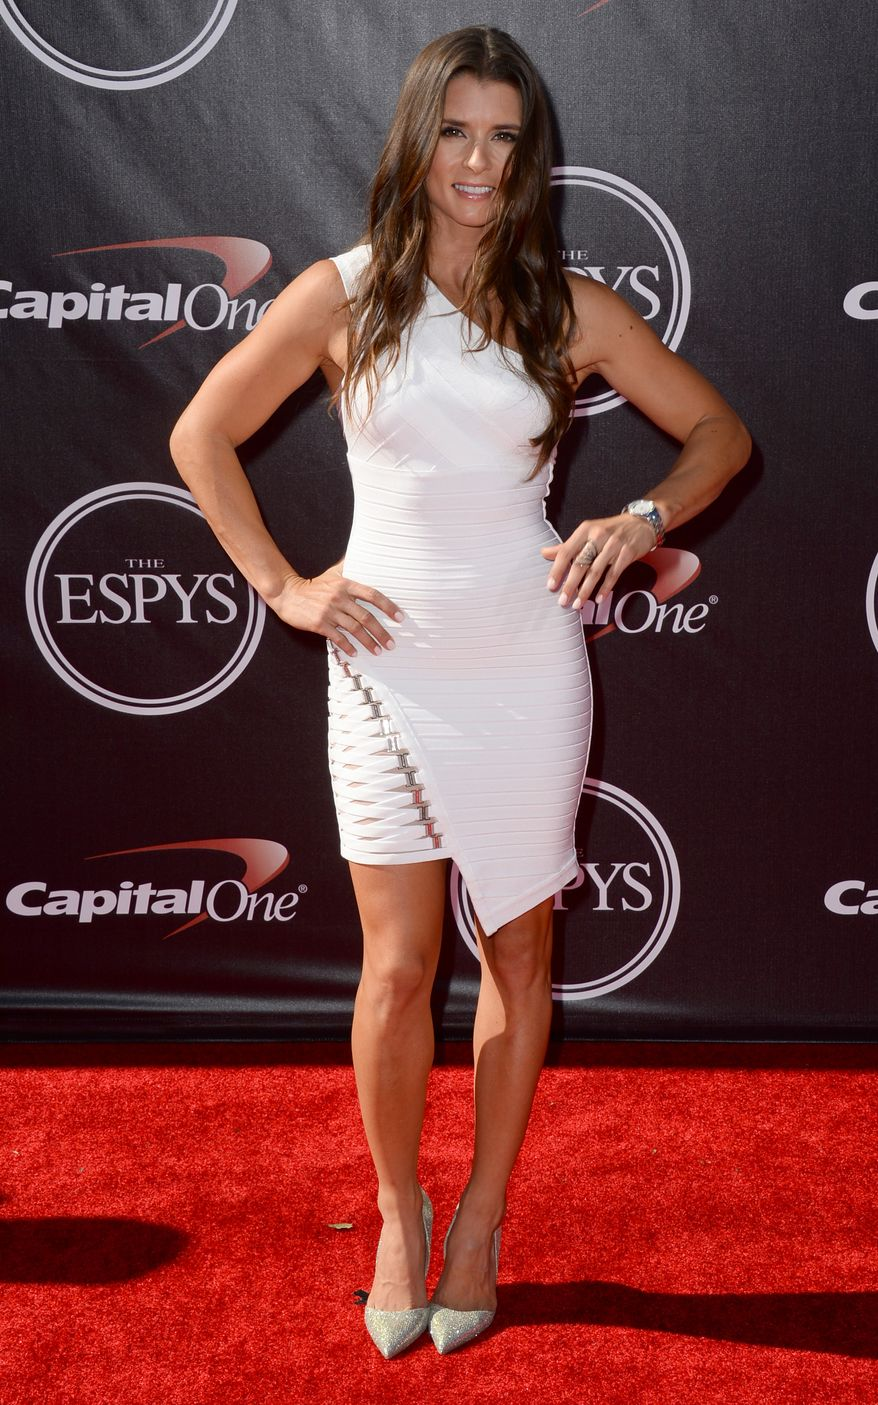 DANICA PATRICK - AUTO RACINGRacer Danica Patrick arrive at the ESPY Awards at the Nokia Theatre on Wednesday, July 16, 2014, in Los Angeles. (Photo by Jordan Strauss/Invision/AP)